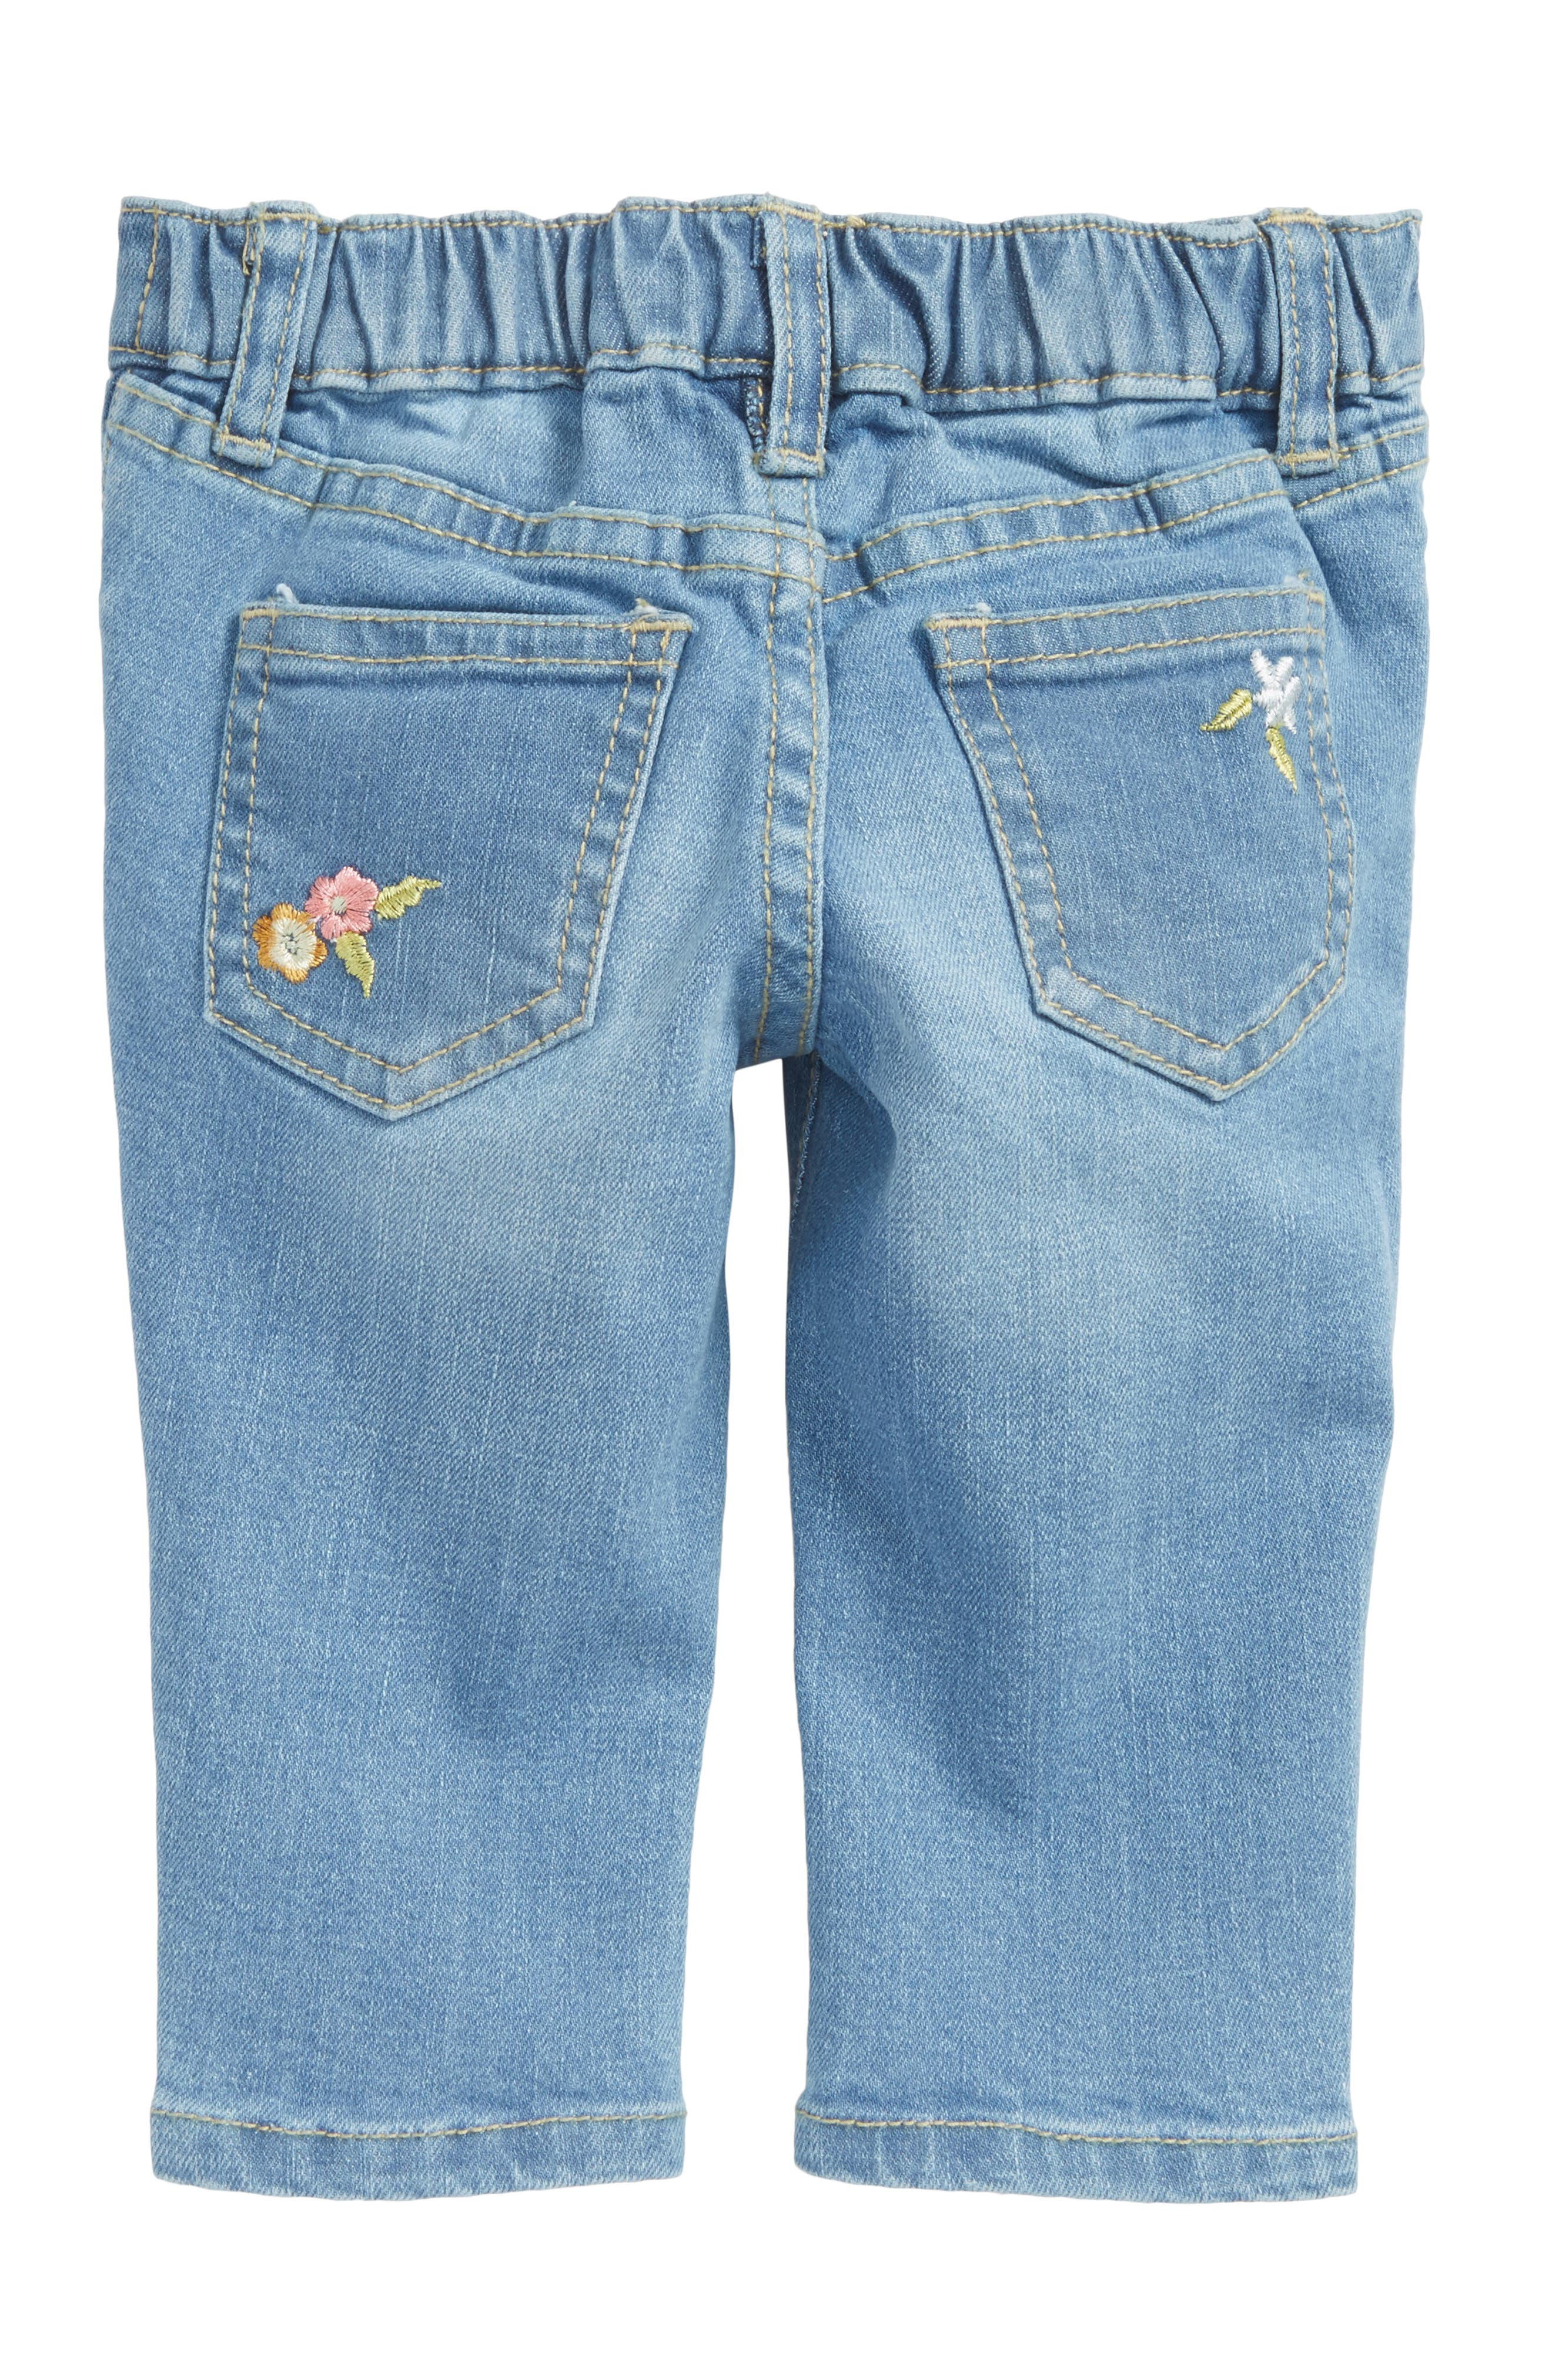 Taylor Embroidered Jeans,                             Alternate thumbnail 2, color,                             Medium Wash